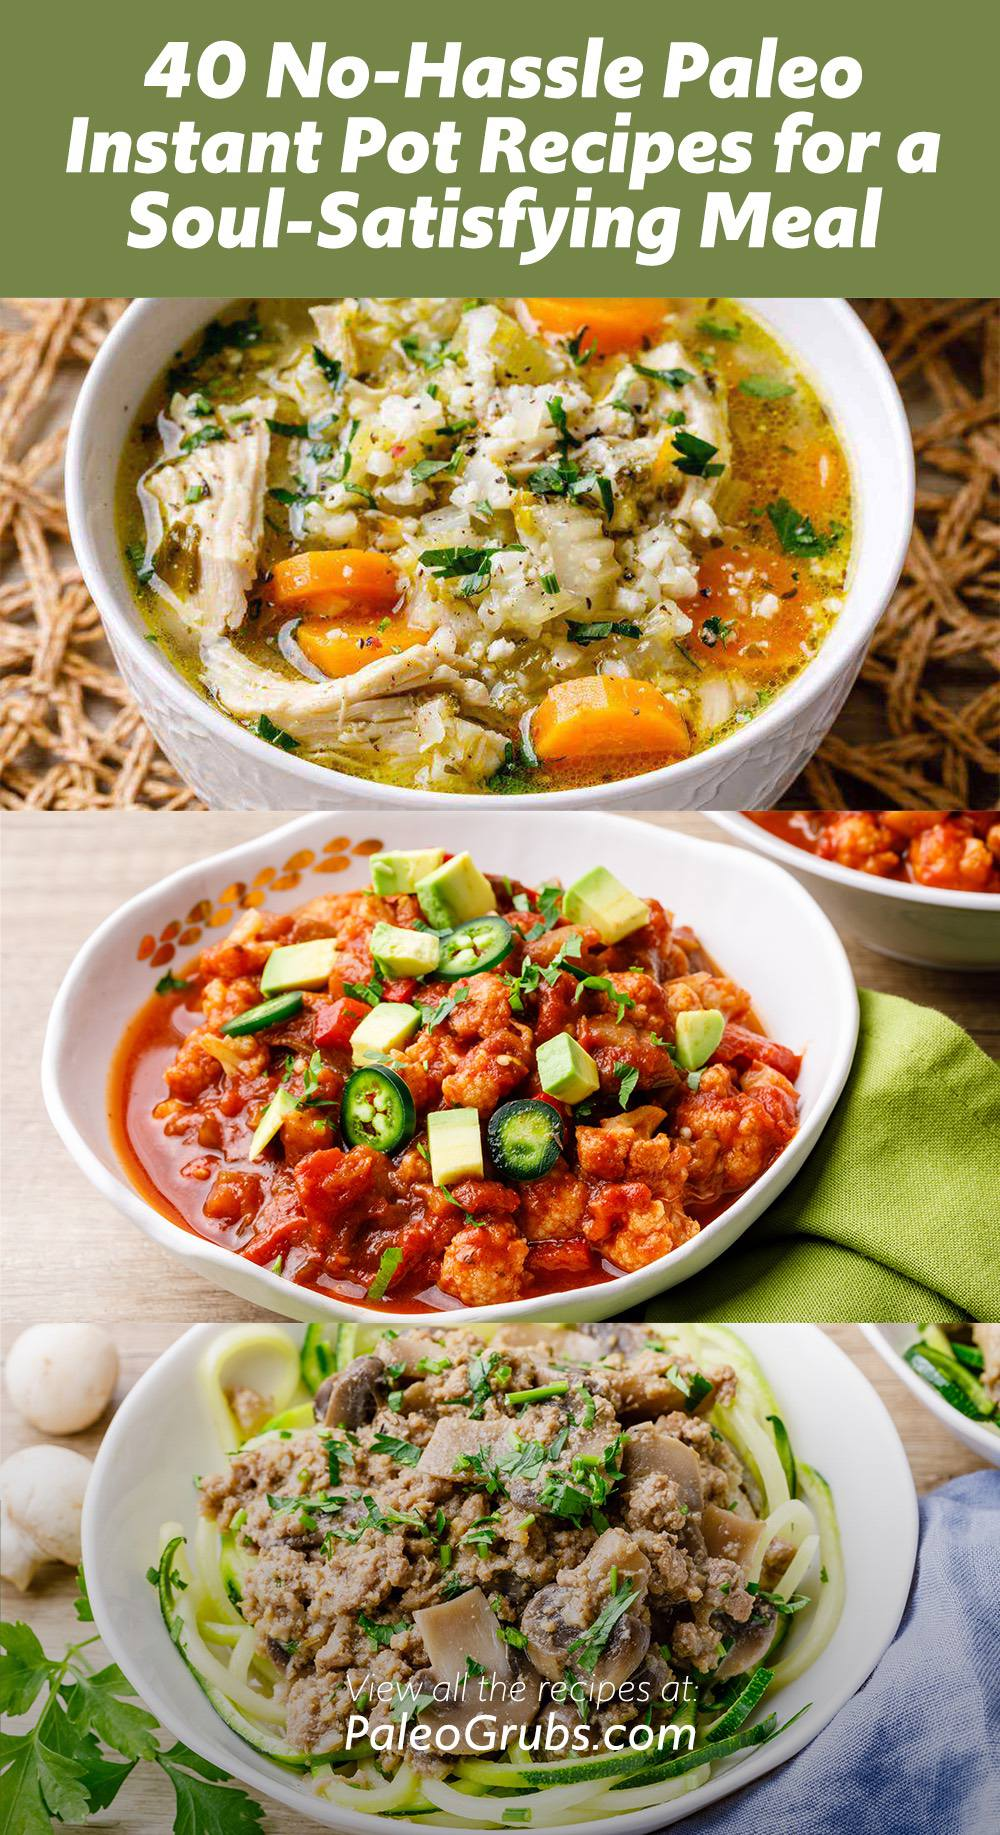 40 No-Hassle Paleo Instant Pot Recipes for a Soul-Satisfying Meal